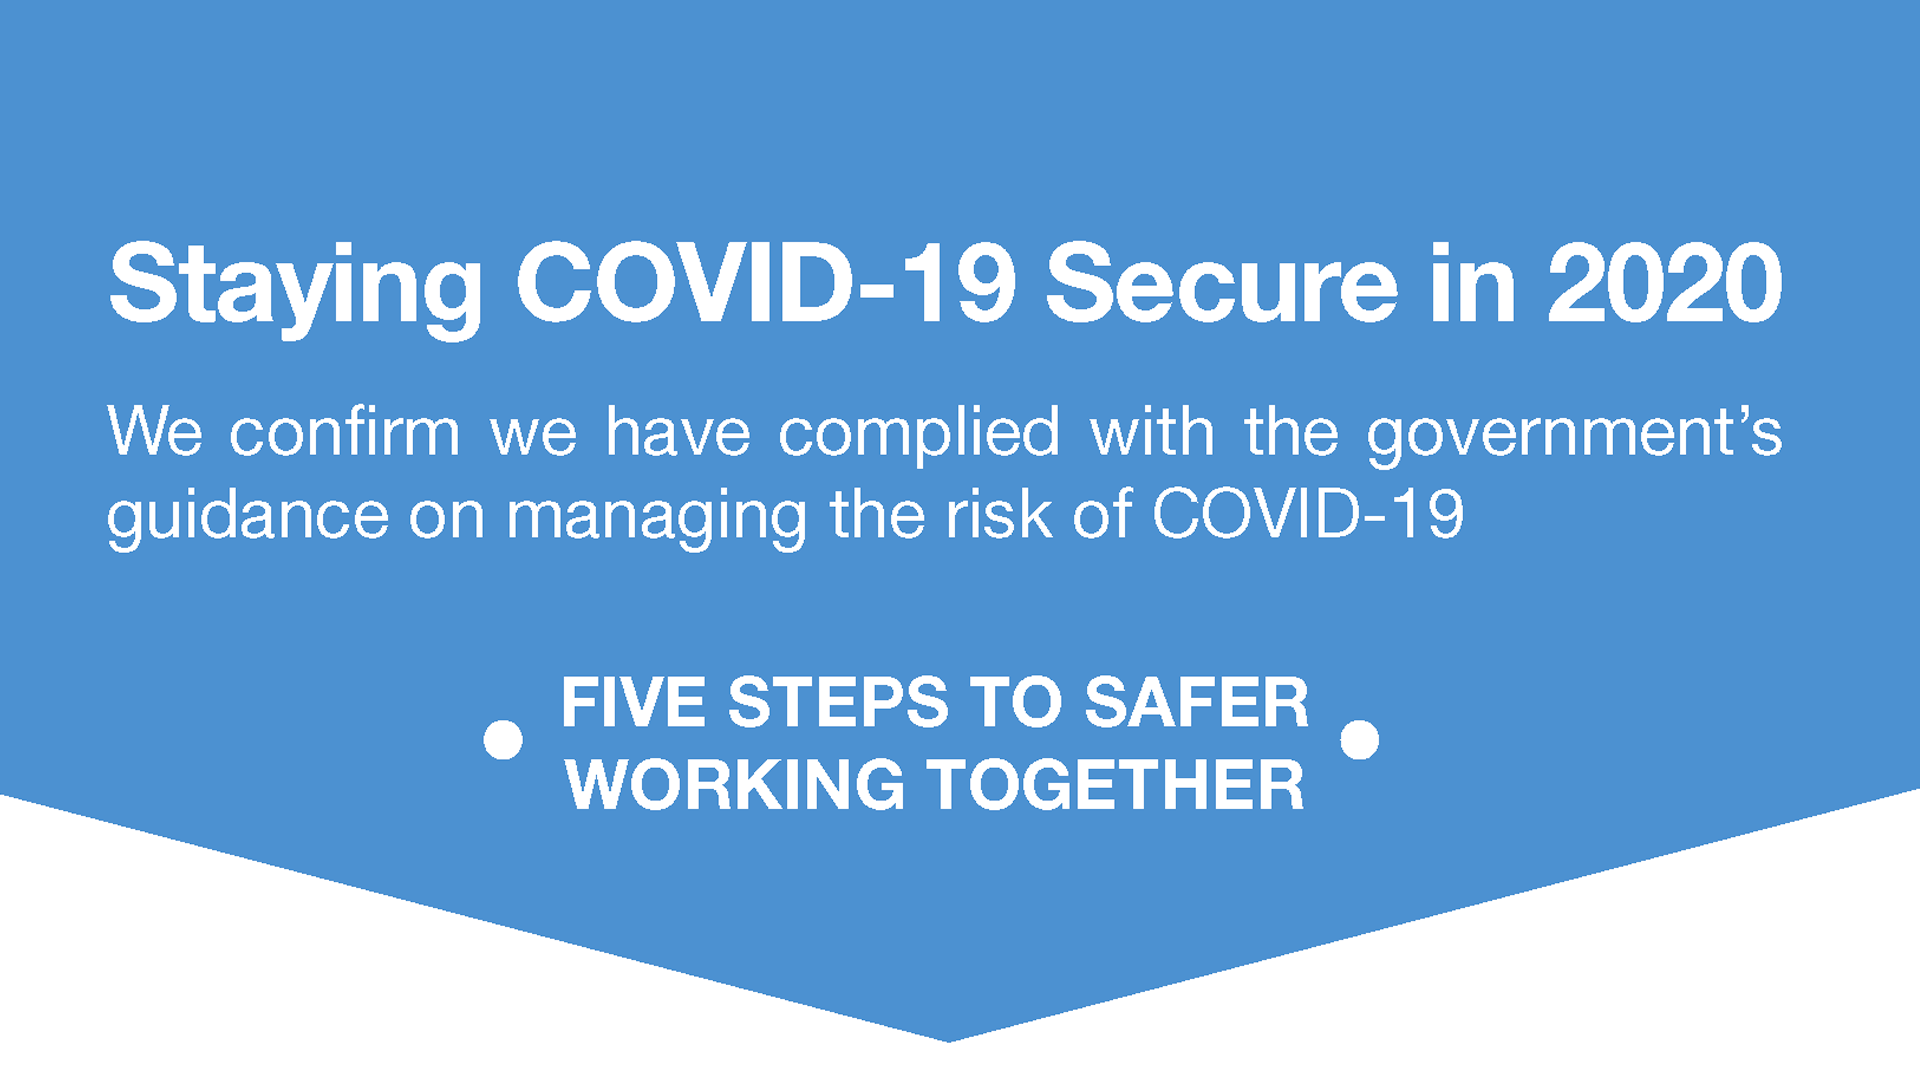 staying-covid-19-secure-header